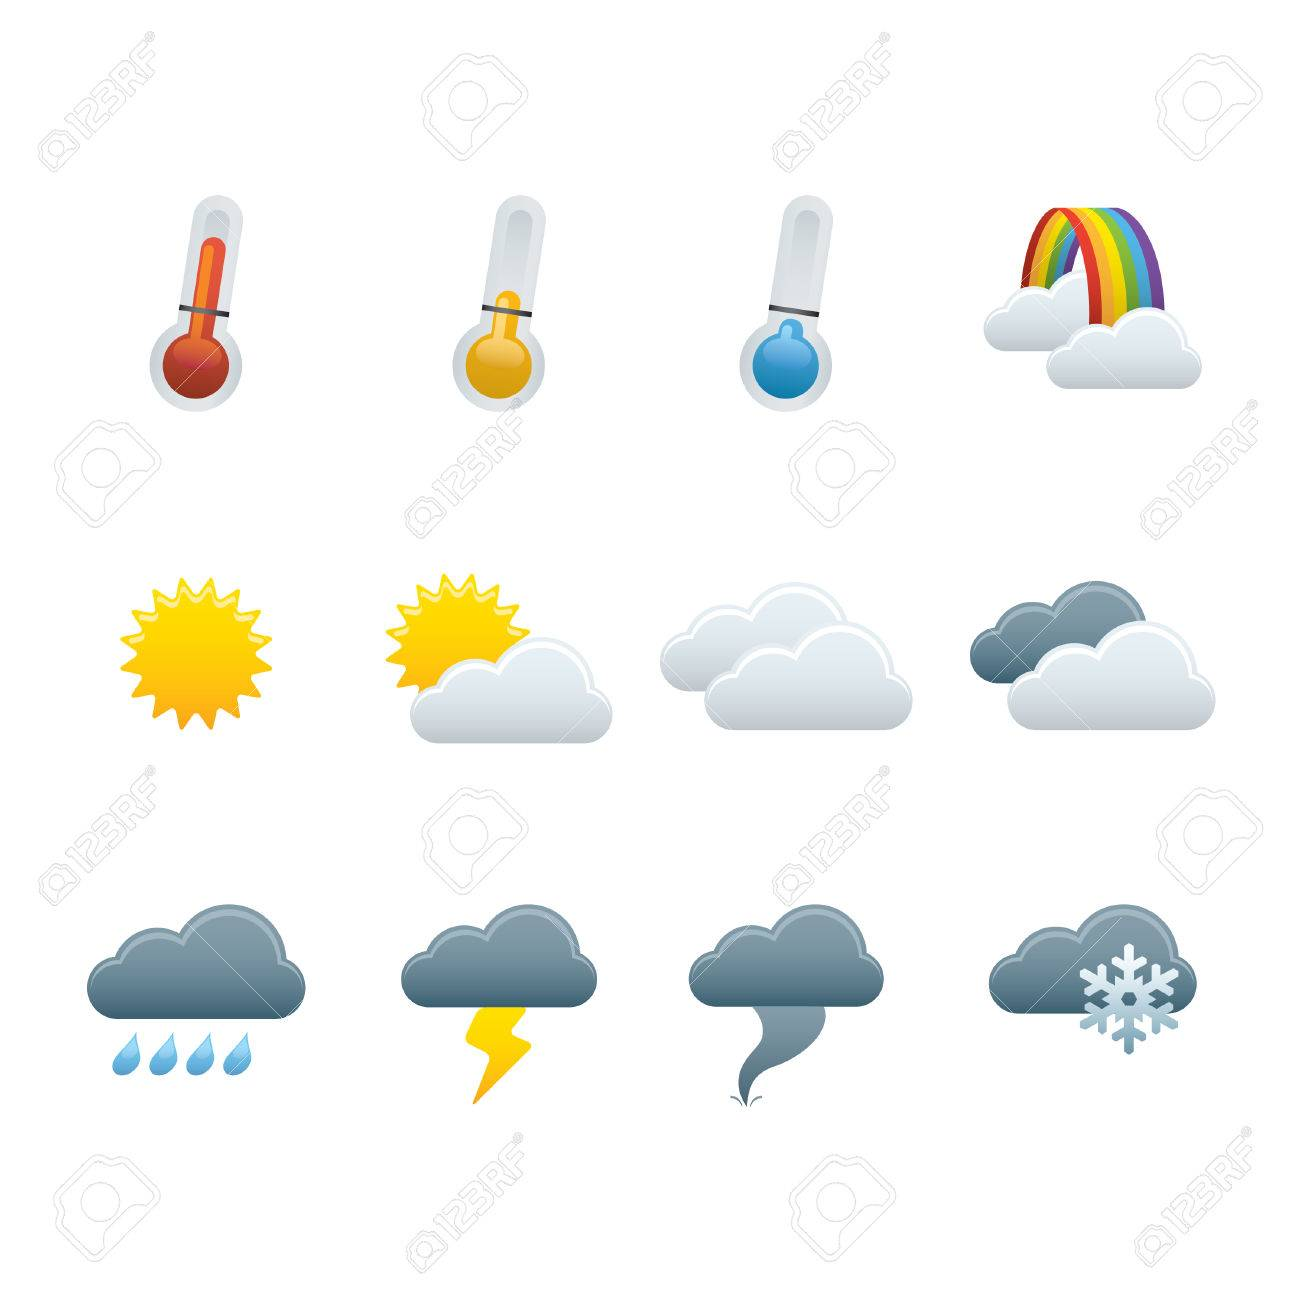 01 Weather Forecast Icons Stock Vector - 7924199